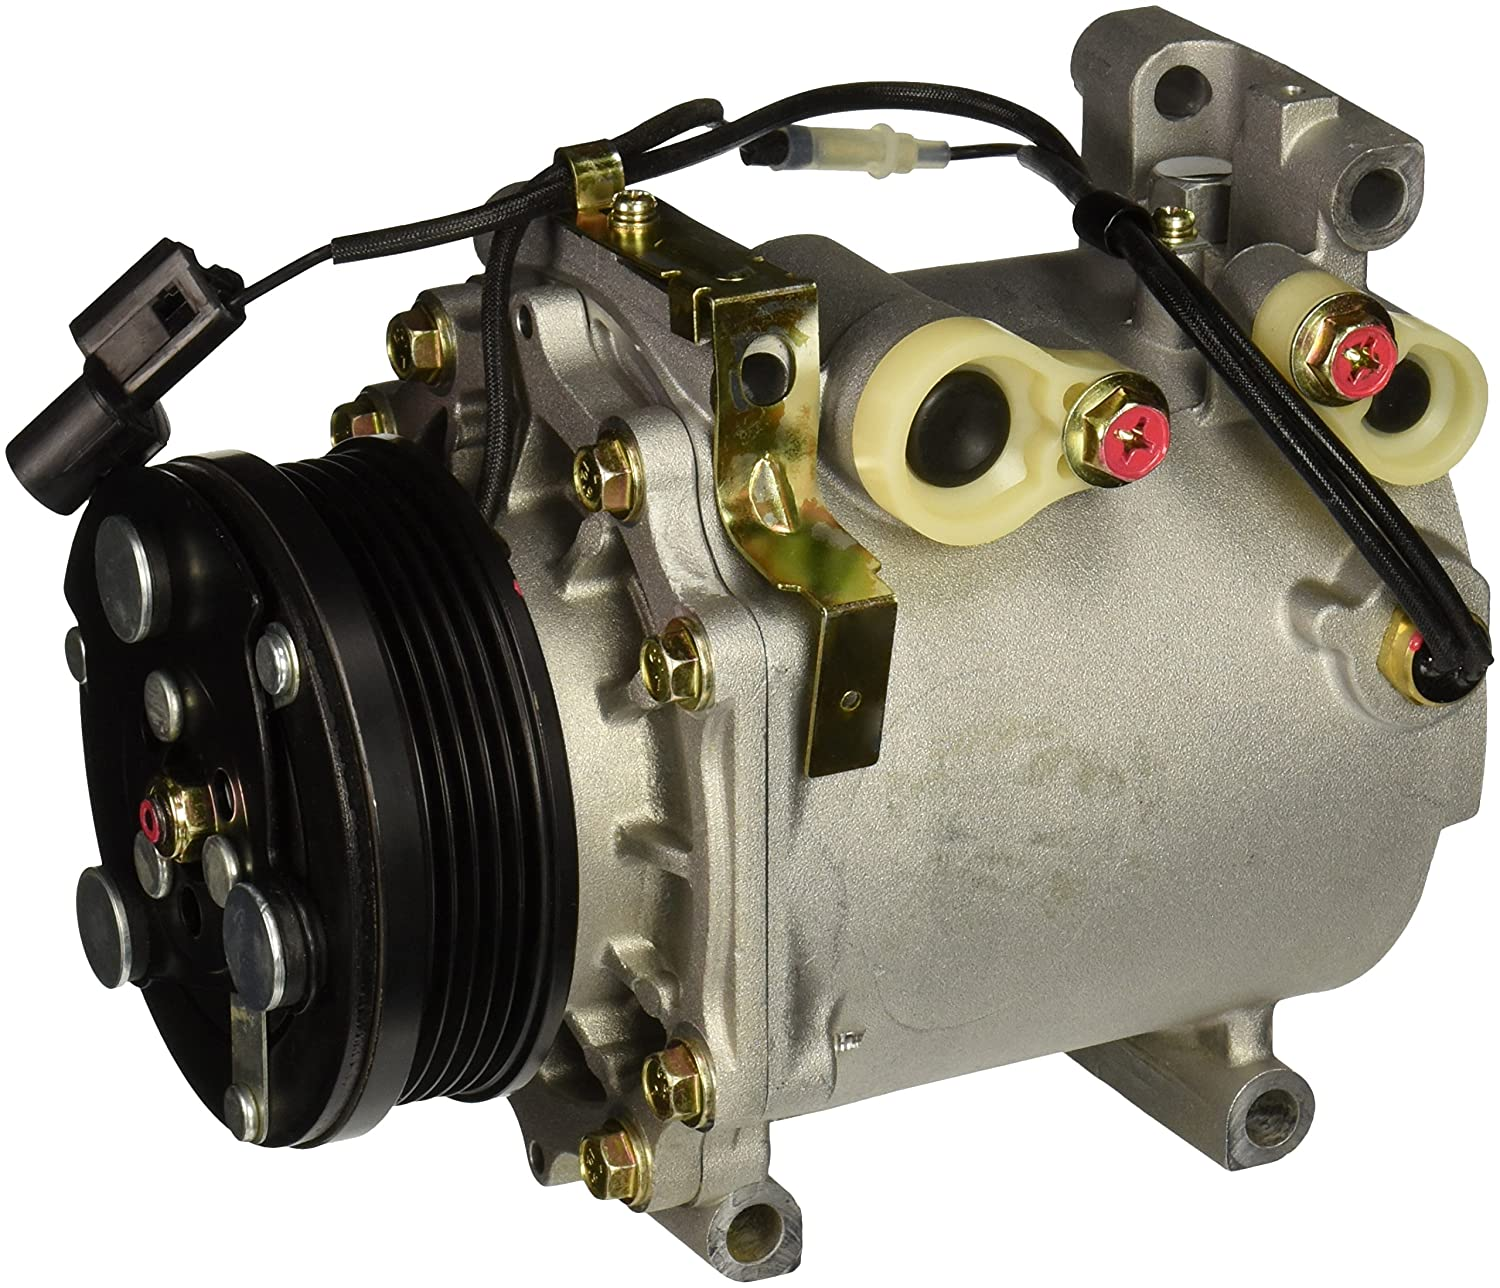 Four Seasons 77483 Remanufactured Compressor with Clutch Standard Motor Products Inc